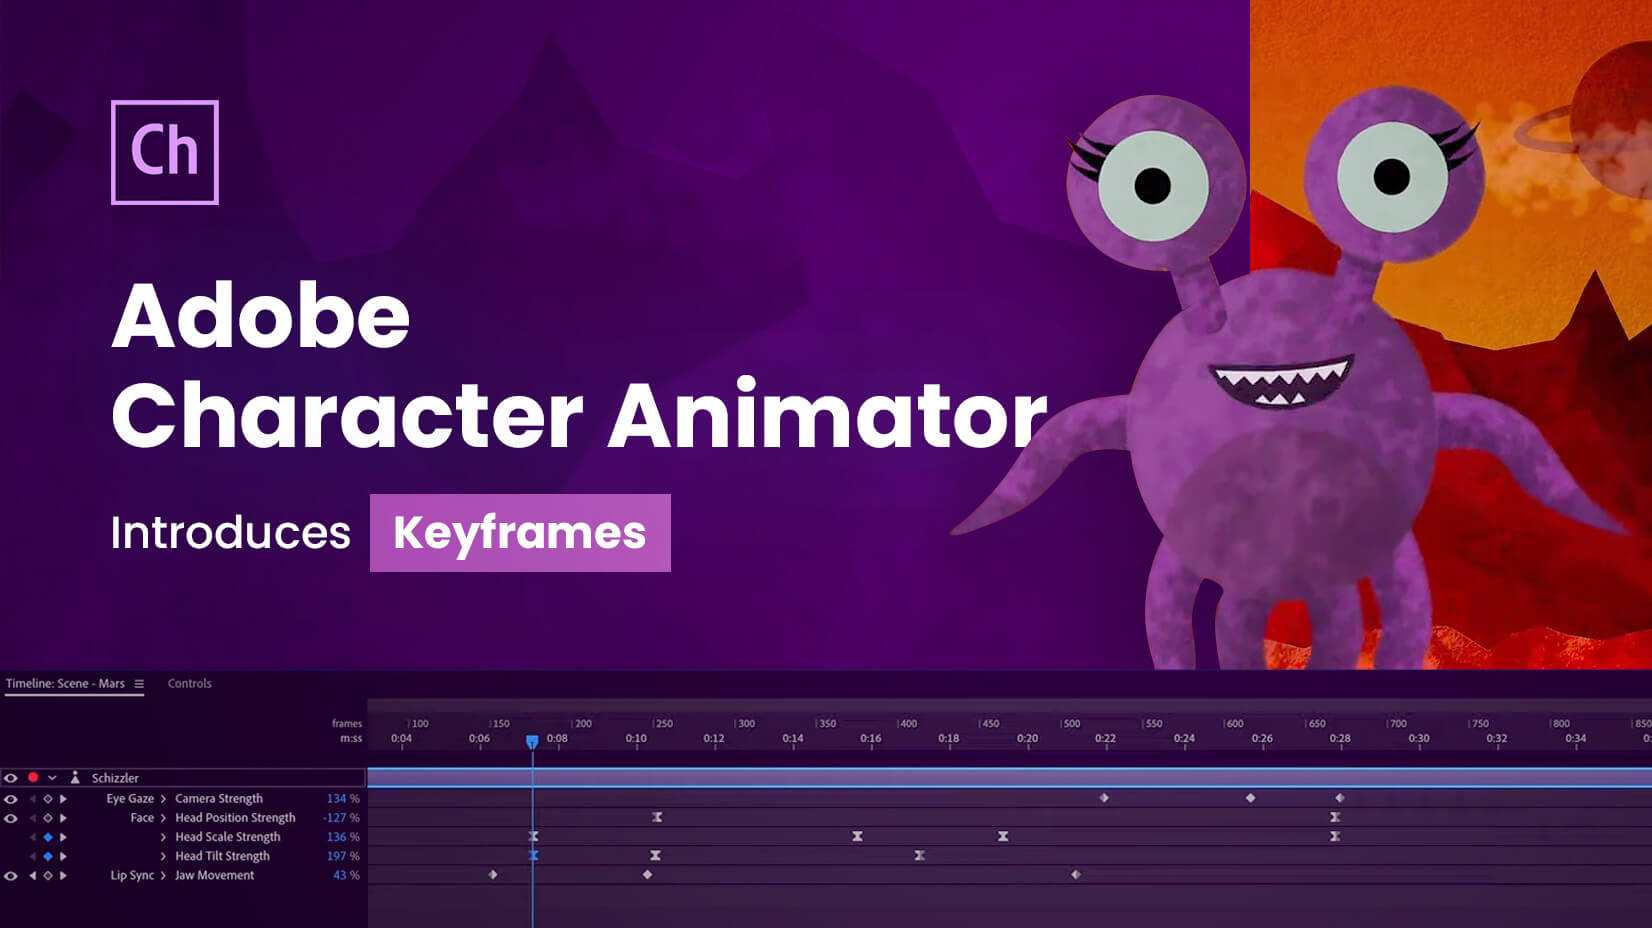 Adobe Character Animator Adds New Feature - Keyframes in 2020 update